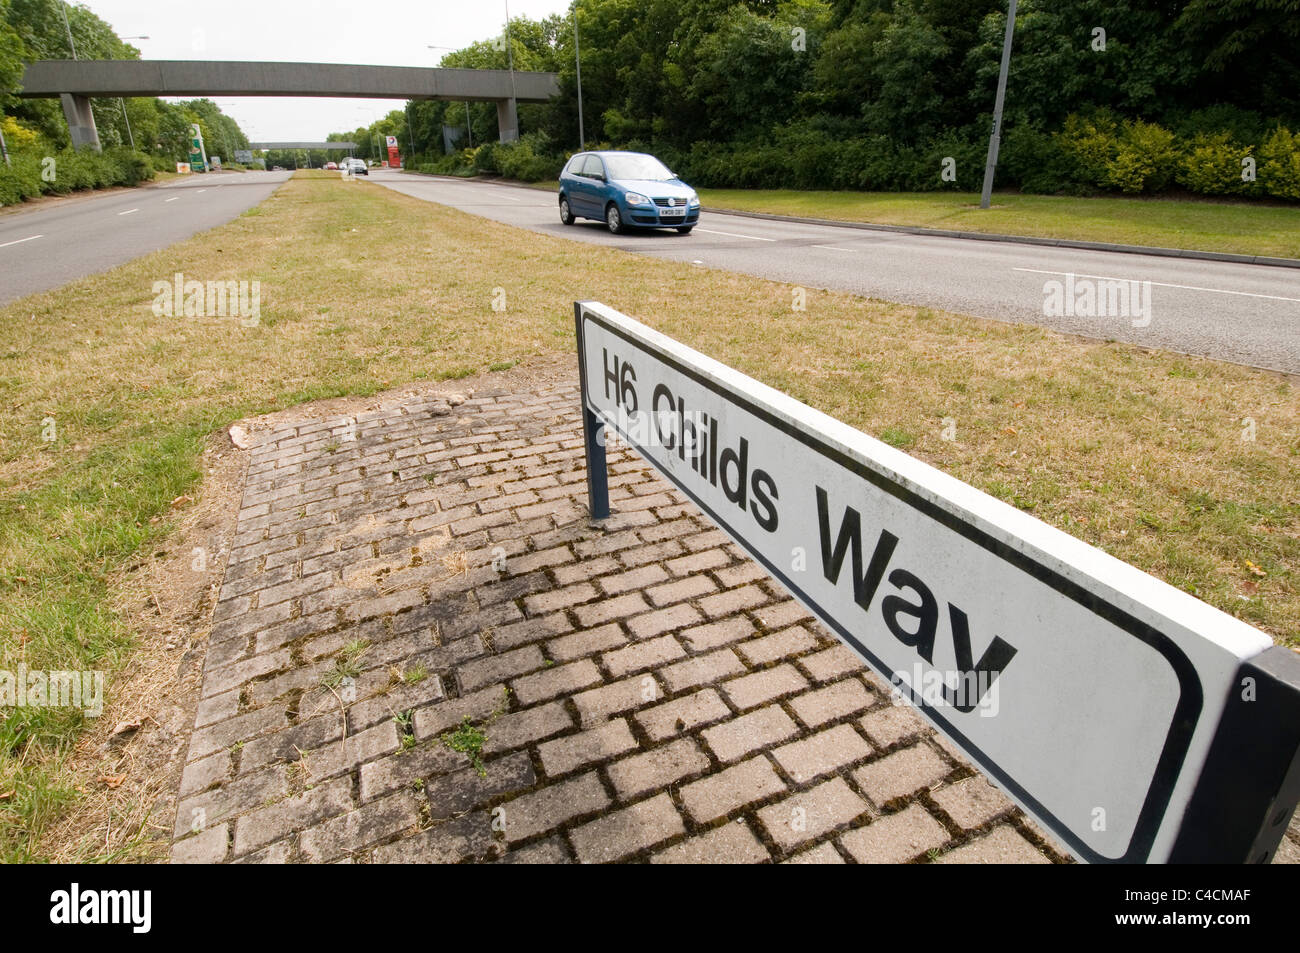 milton keynes grid system roads road uk car culture wide streets street - Stock Image